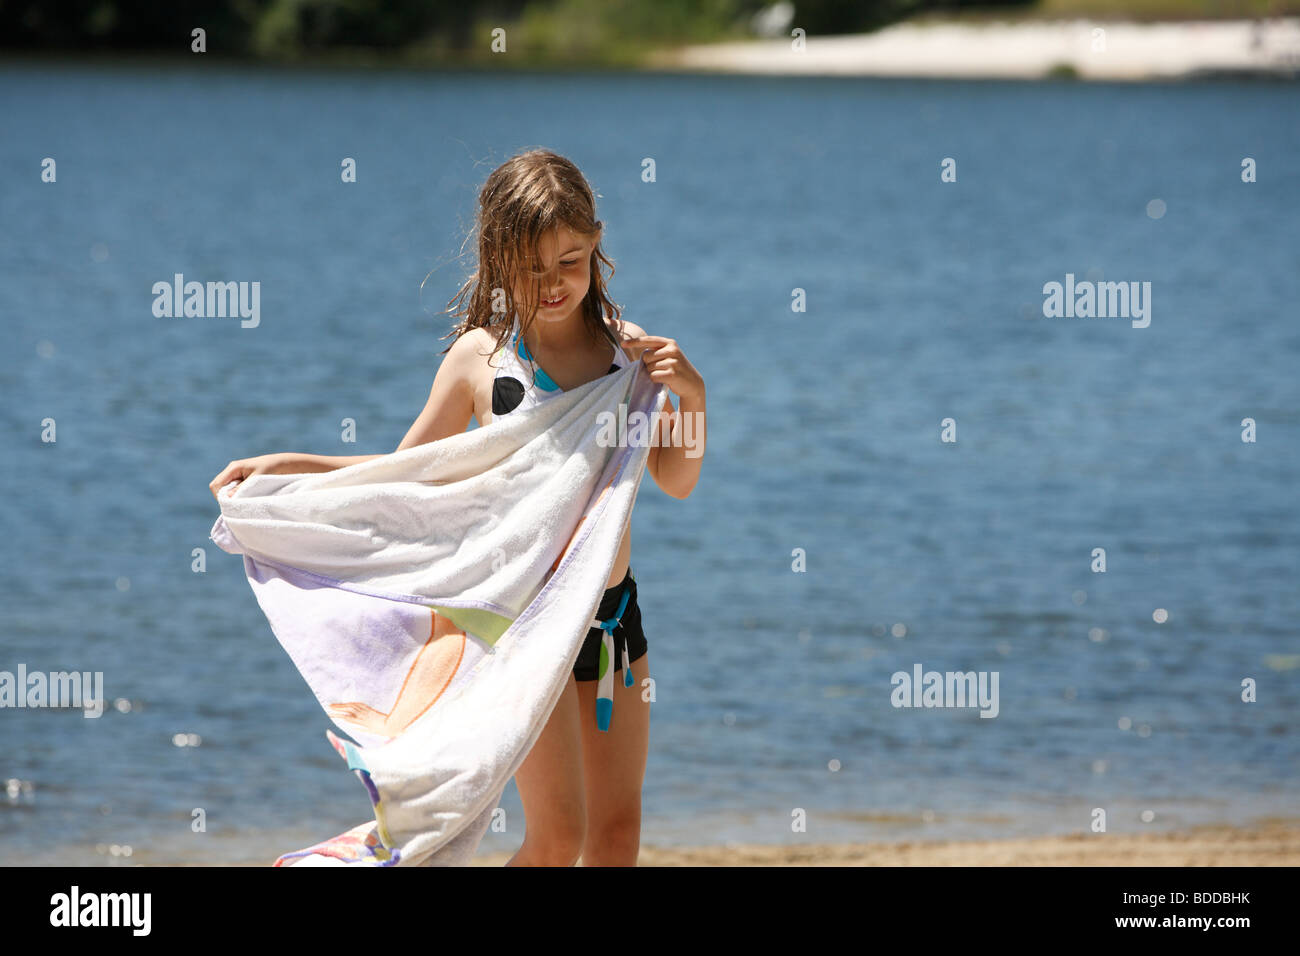 girl with towel on beach - Stock Image